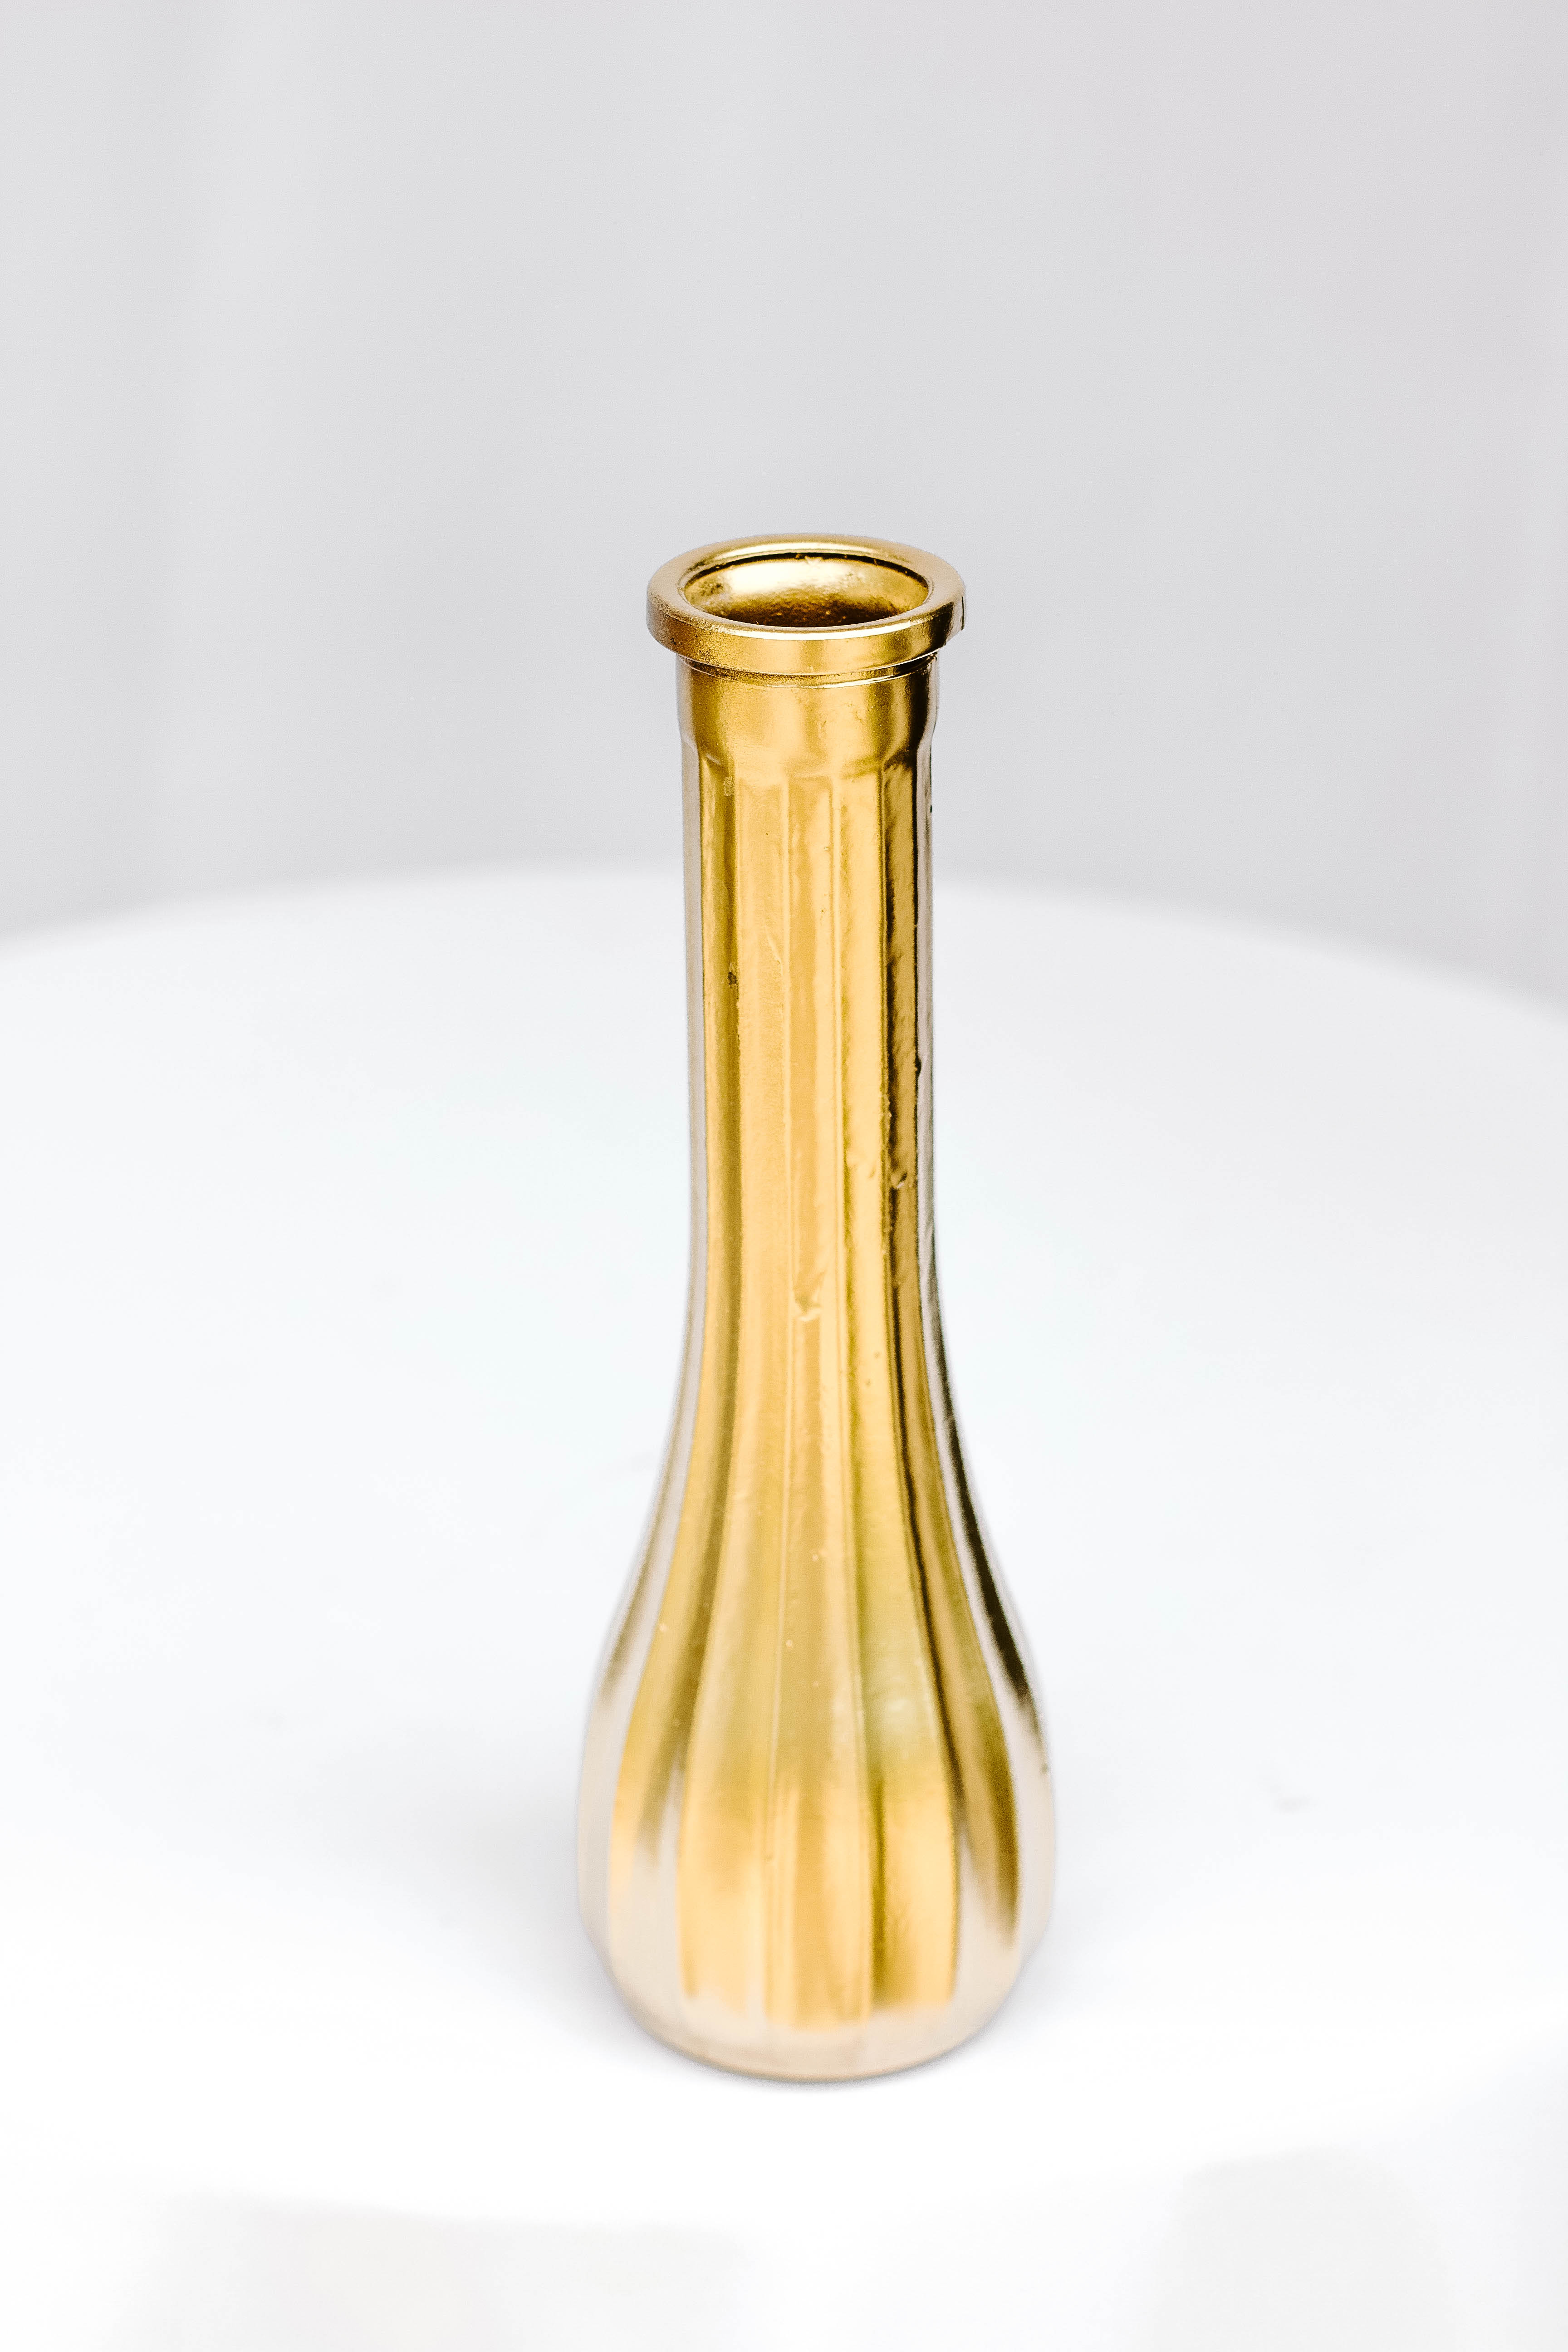 Gold Ribbed Skinny Vase